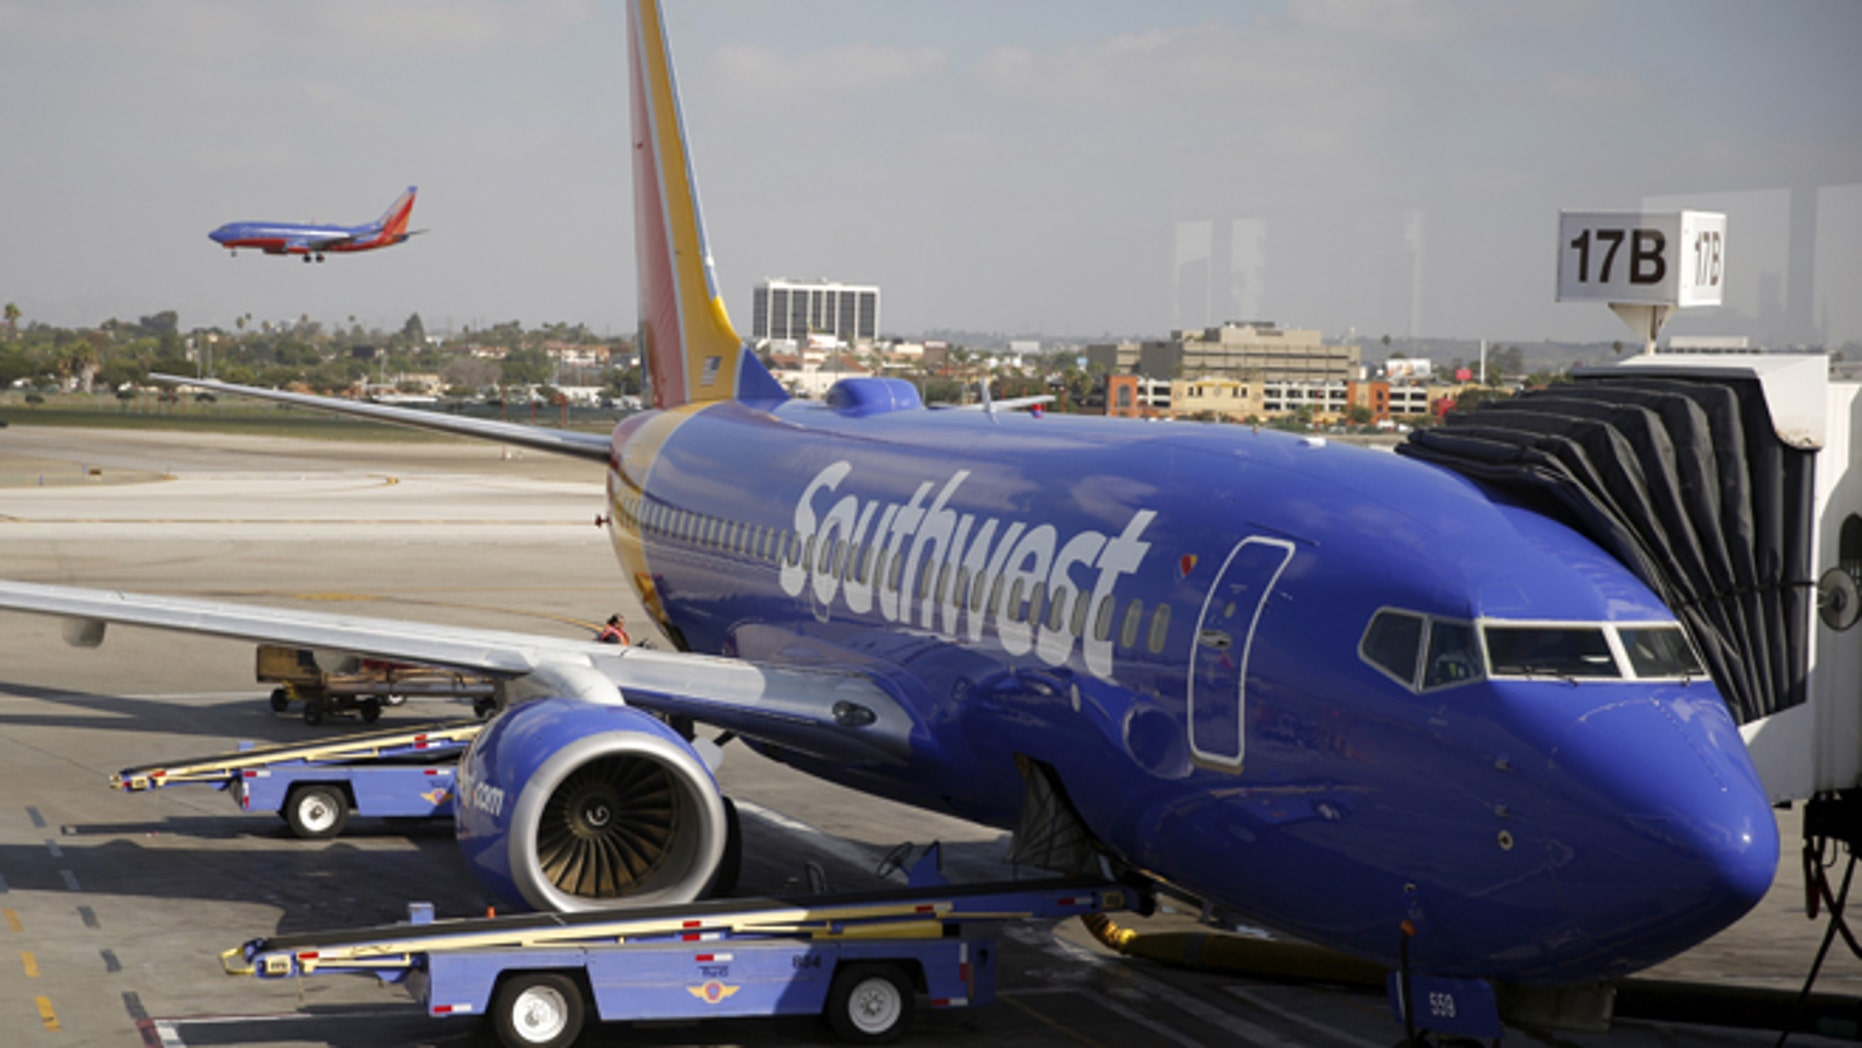 Southwest Airlines planes are seen at LAX airport in Los Angeles, California, United States